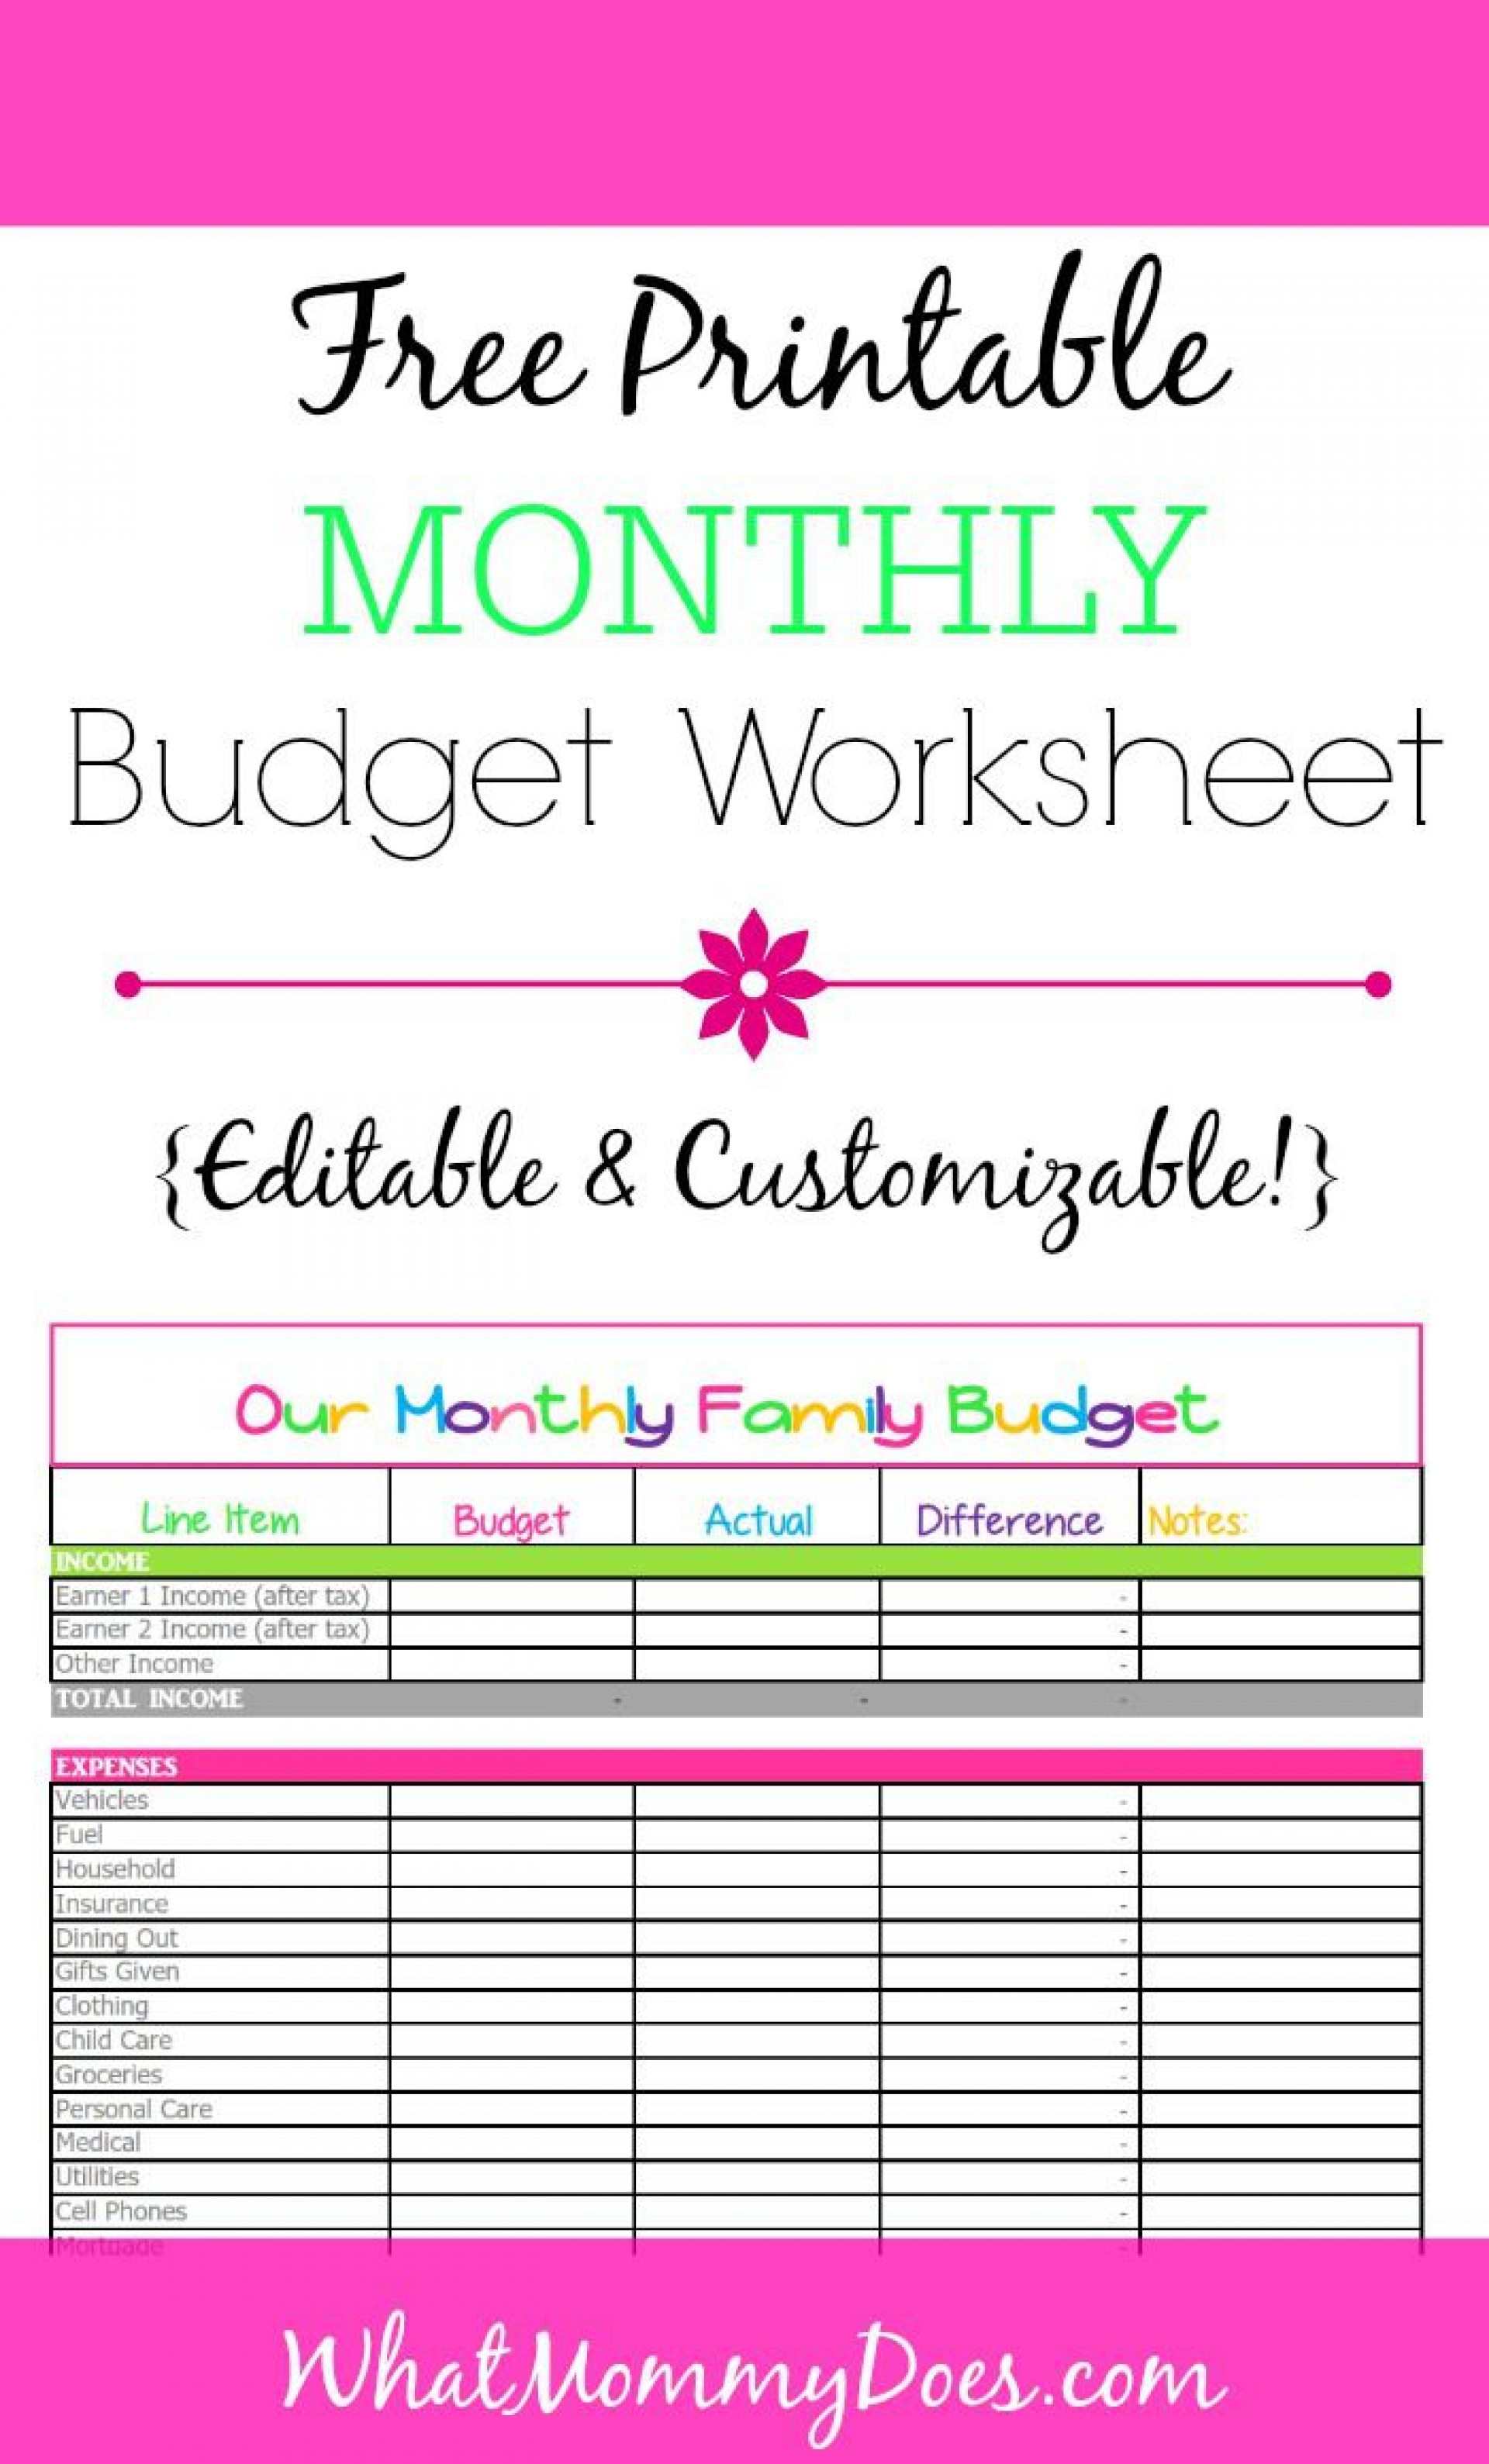 008 Awesome Free Printable Home Budget Template Photo  Form1920